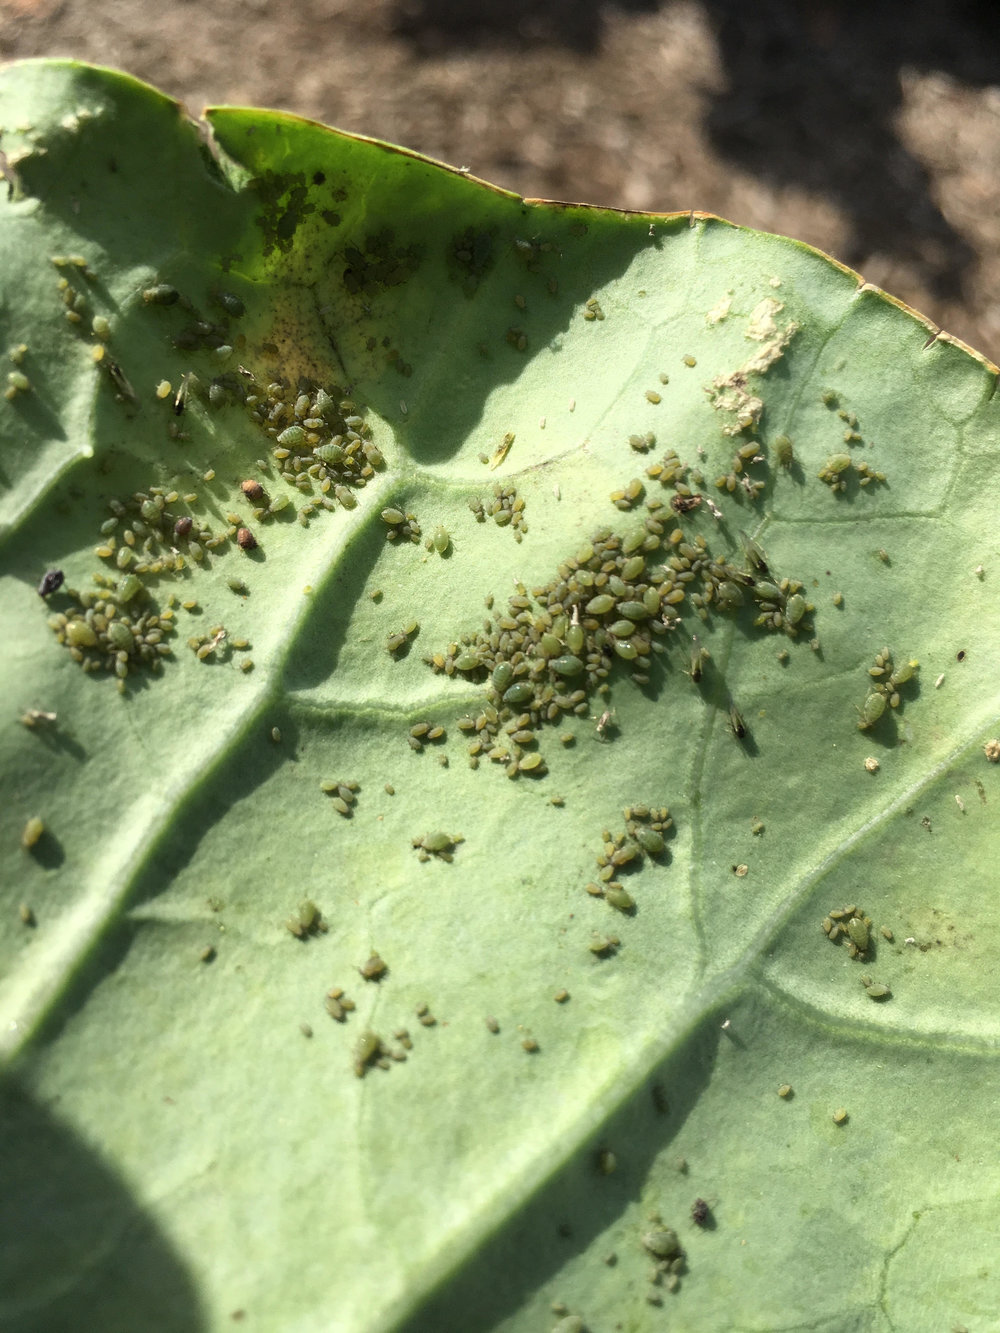 Winged and non-winged aphids on a collard leaf